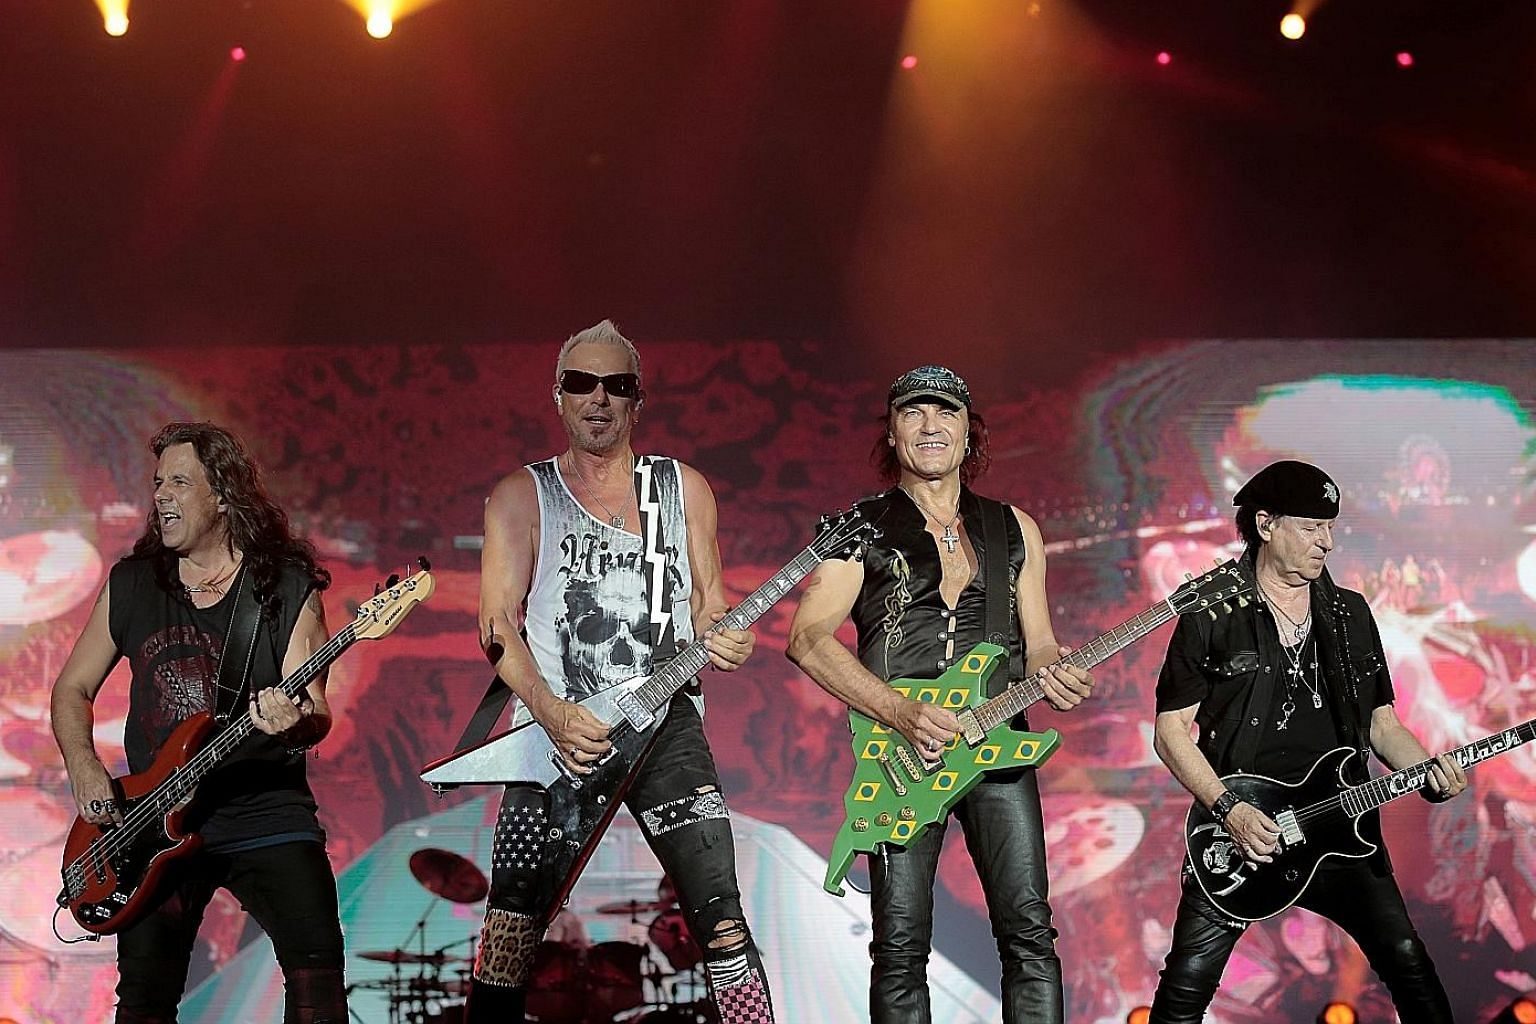 German band Scorpions will perform at Singapore Rock Festival II in March next year.